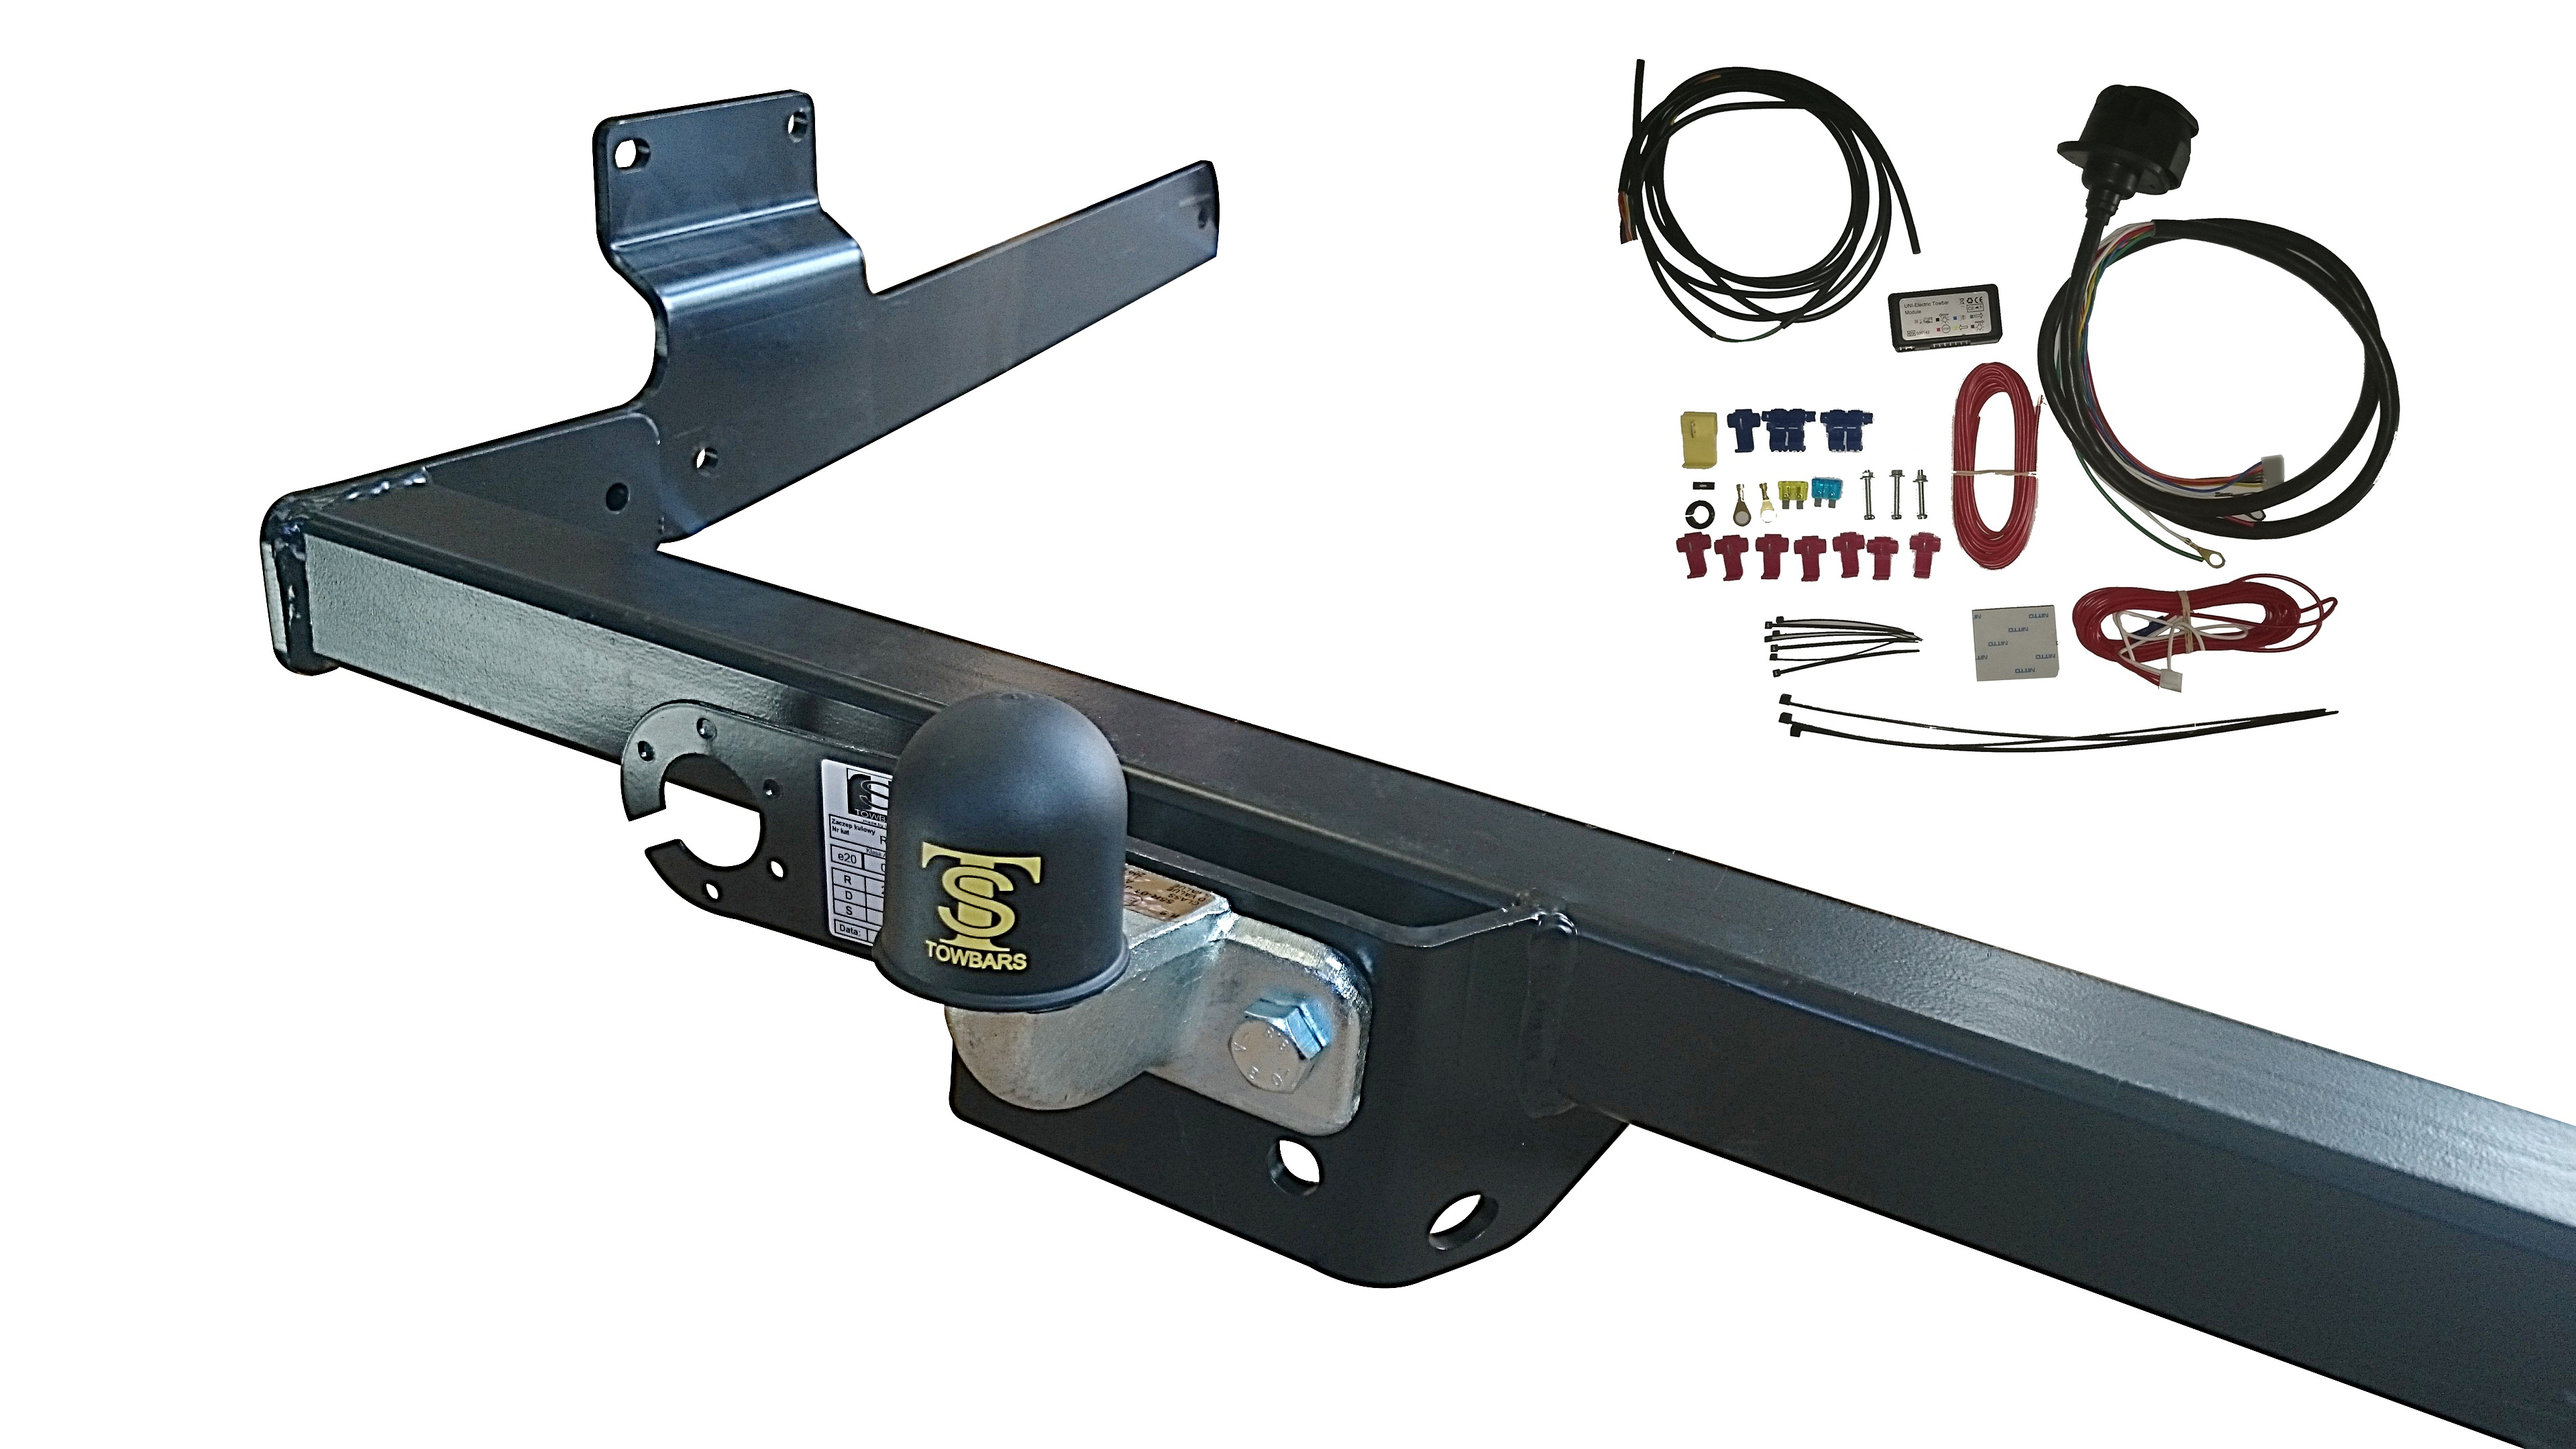 Renault Clio Tow Bar Wiring Diagram : Towbar flange nissan interstar opel movano renault master